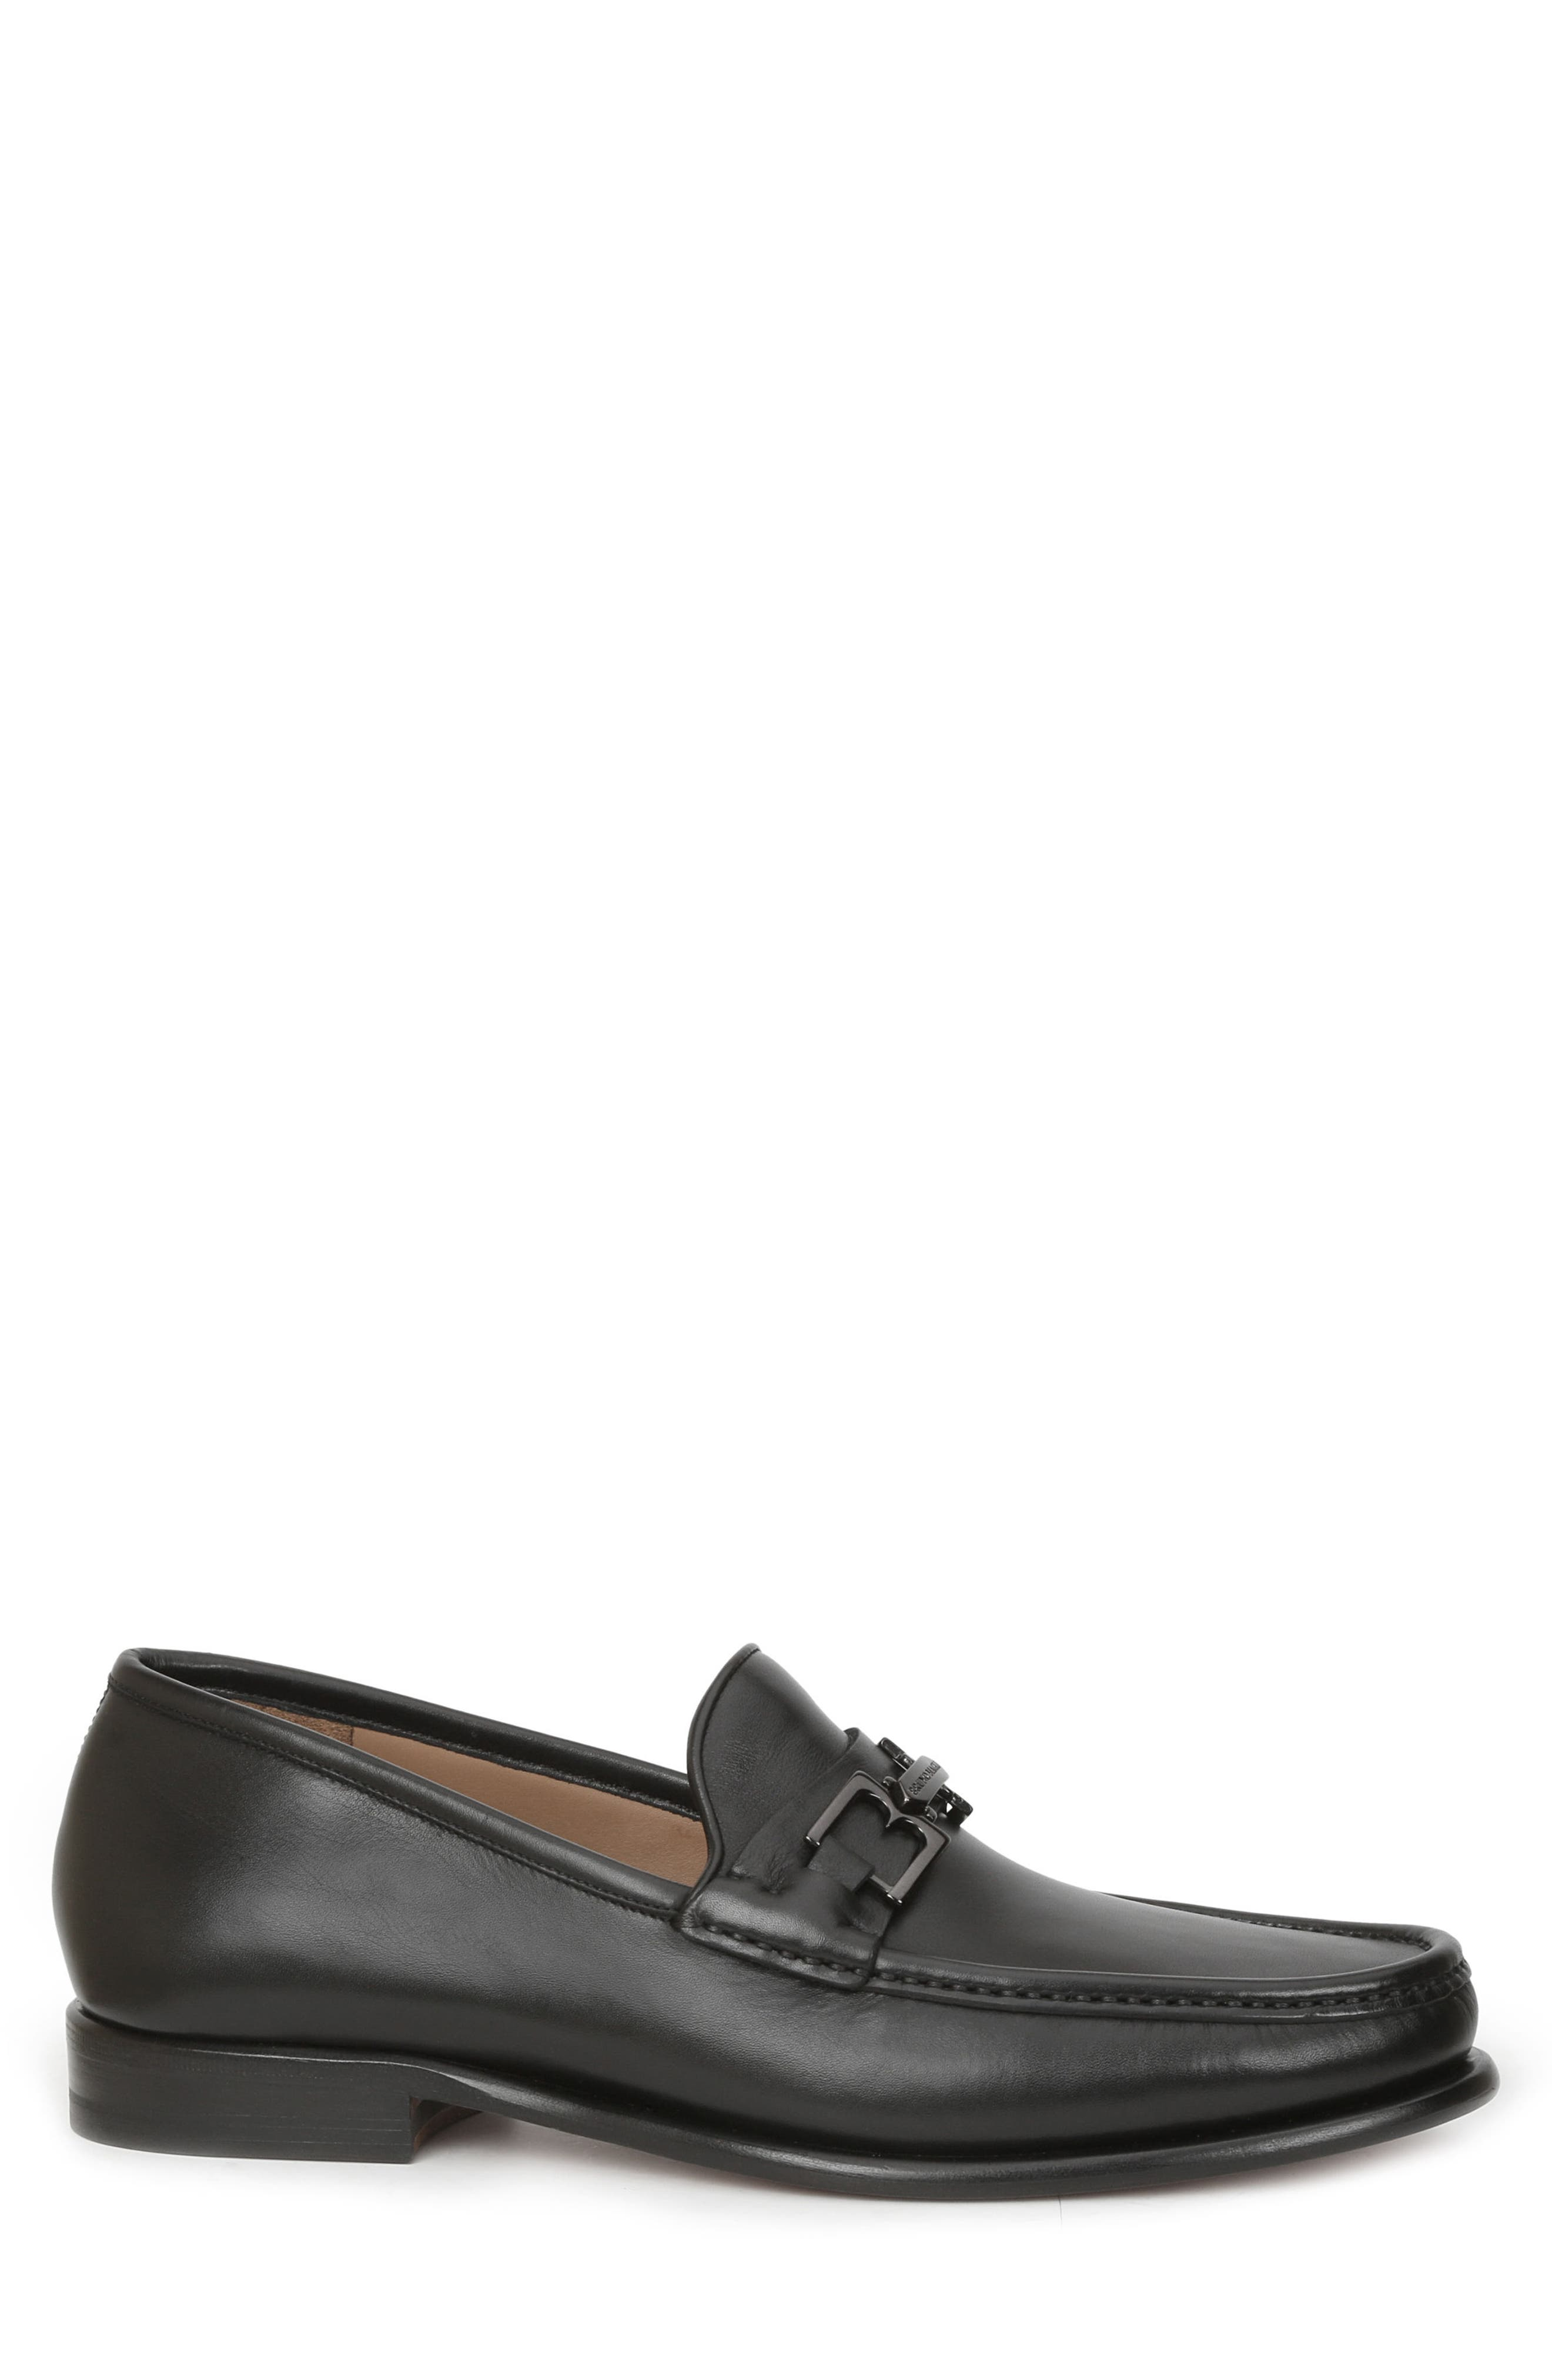 Enzo Bit Loafer,                             Alternate thumbnail 3, color,                             Black